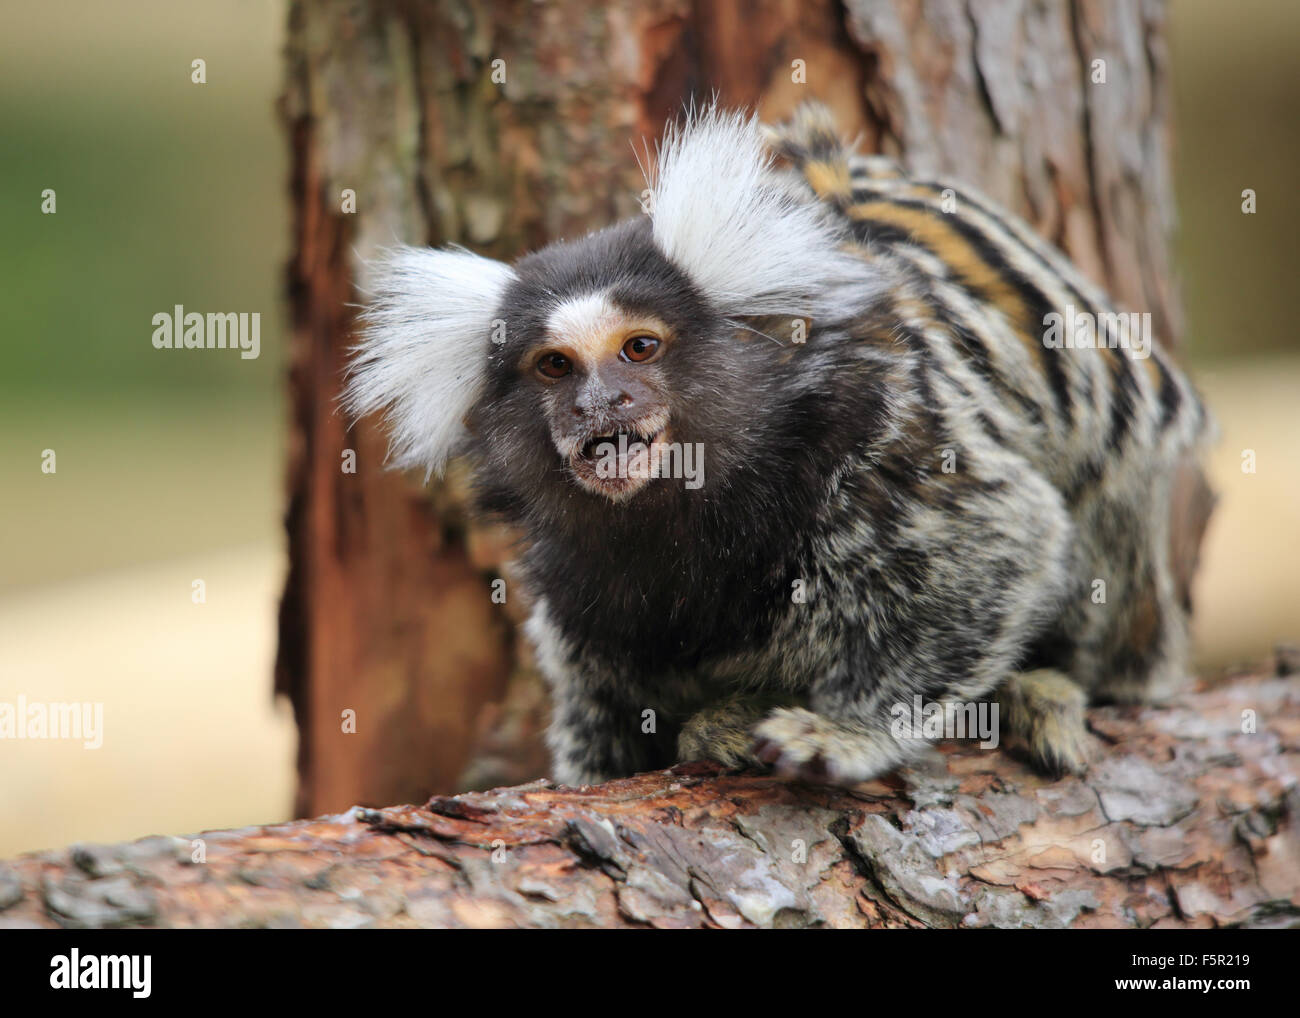 A lovely Common Marmoset, also known simply as Marmoset, sitting on a bare tree stump - Stock Image